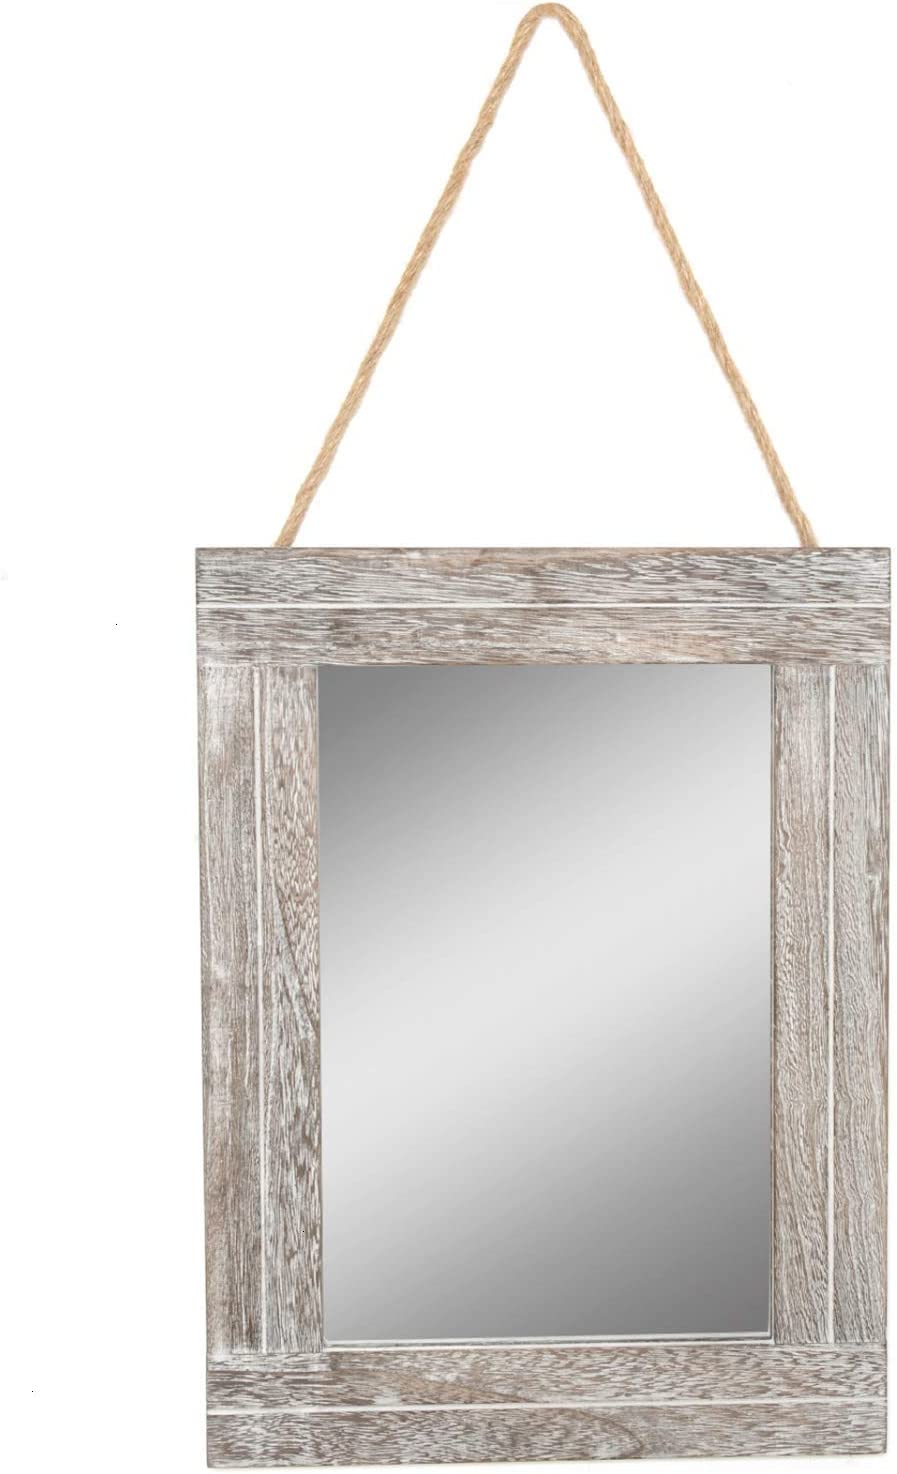 Pomeat 16'' X 12'' Rustic Wood Framed Wall Mirror, Farmhouse Mirror with Hanging Rope for Vintage Home Décor for Entryway, Bedroom, Bathroom, Dresser, Hallway (WashBrown)